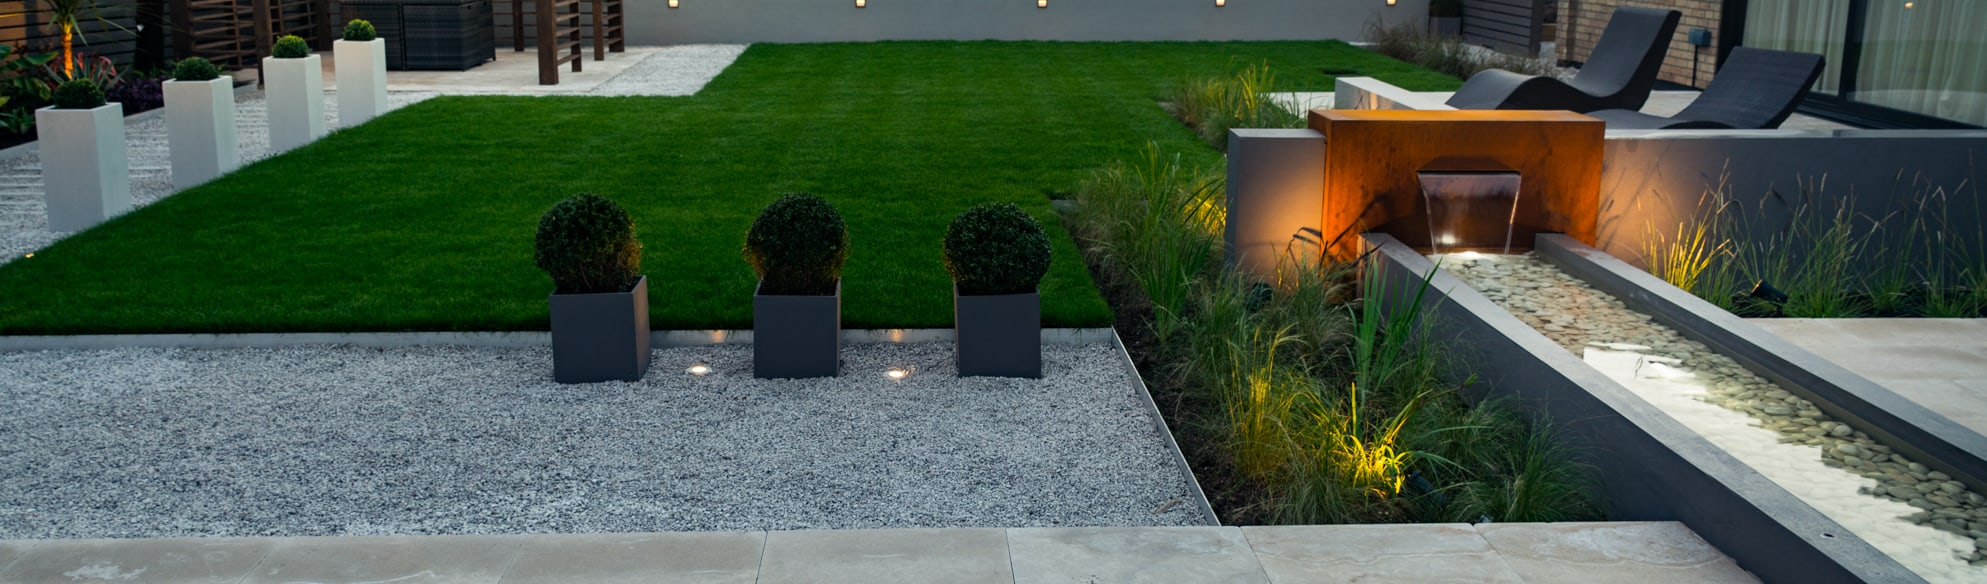 Robert hughes garden design landscape architects in for Garden design knutsford